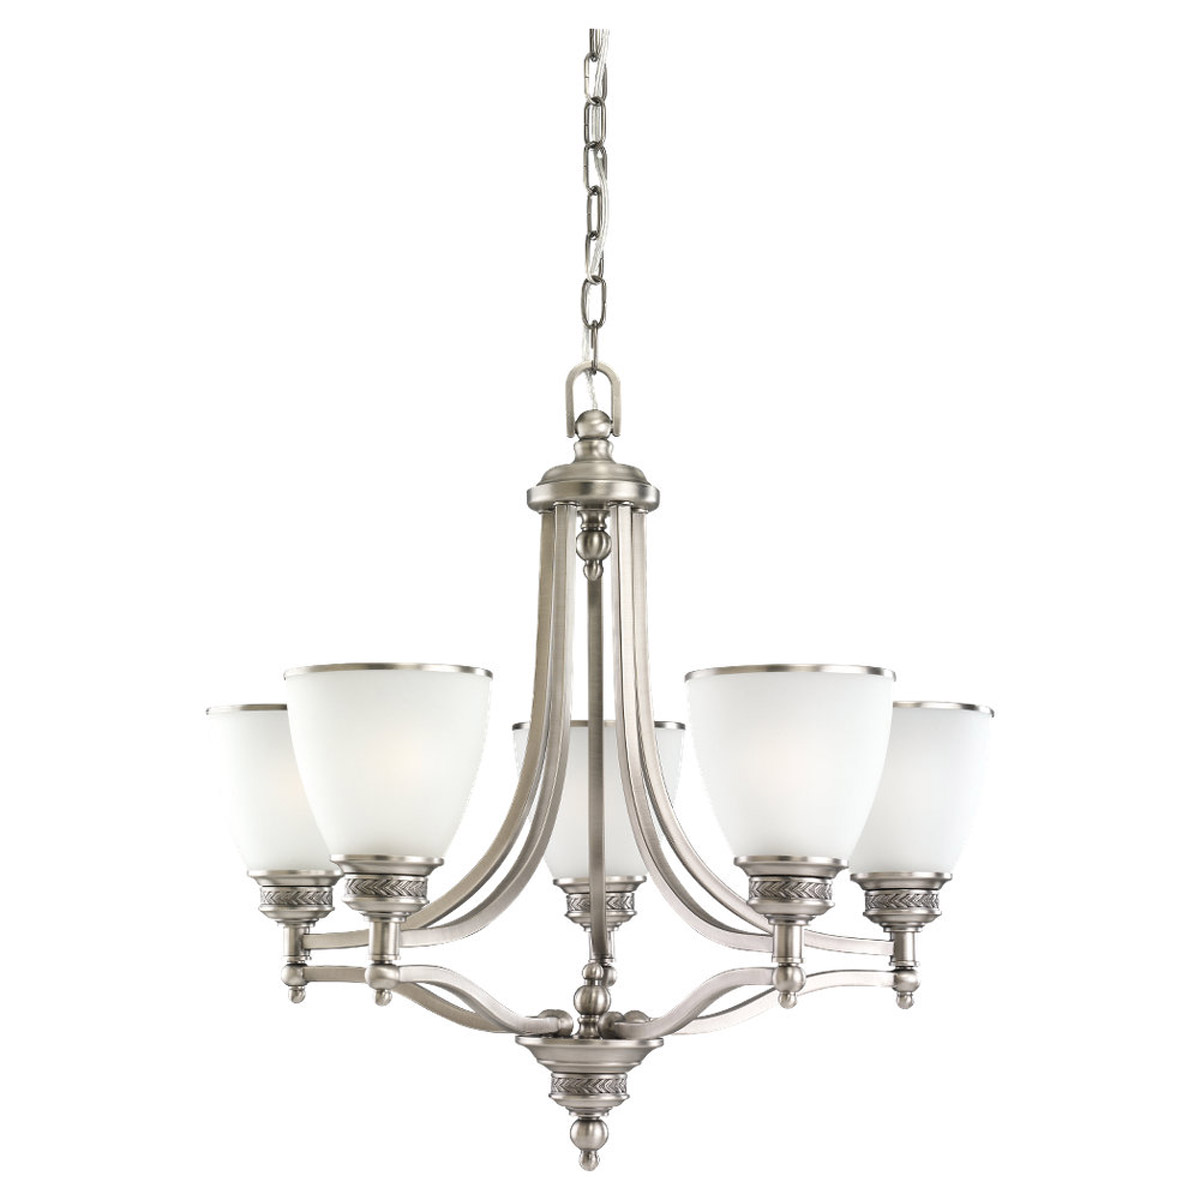 Sea Gull Lighting Laurel Leaf 5 Light Chandelier in Antique Brushed Nickel 31350-965